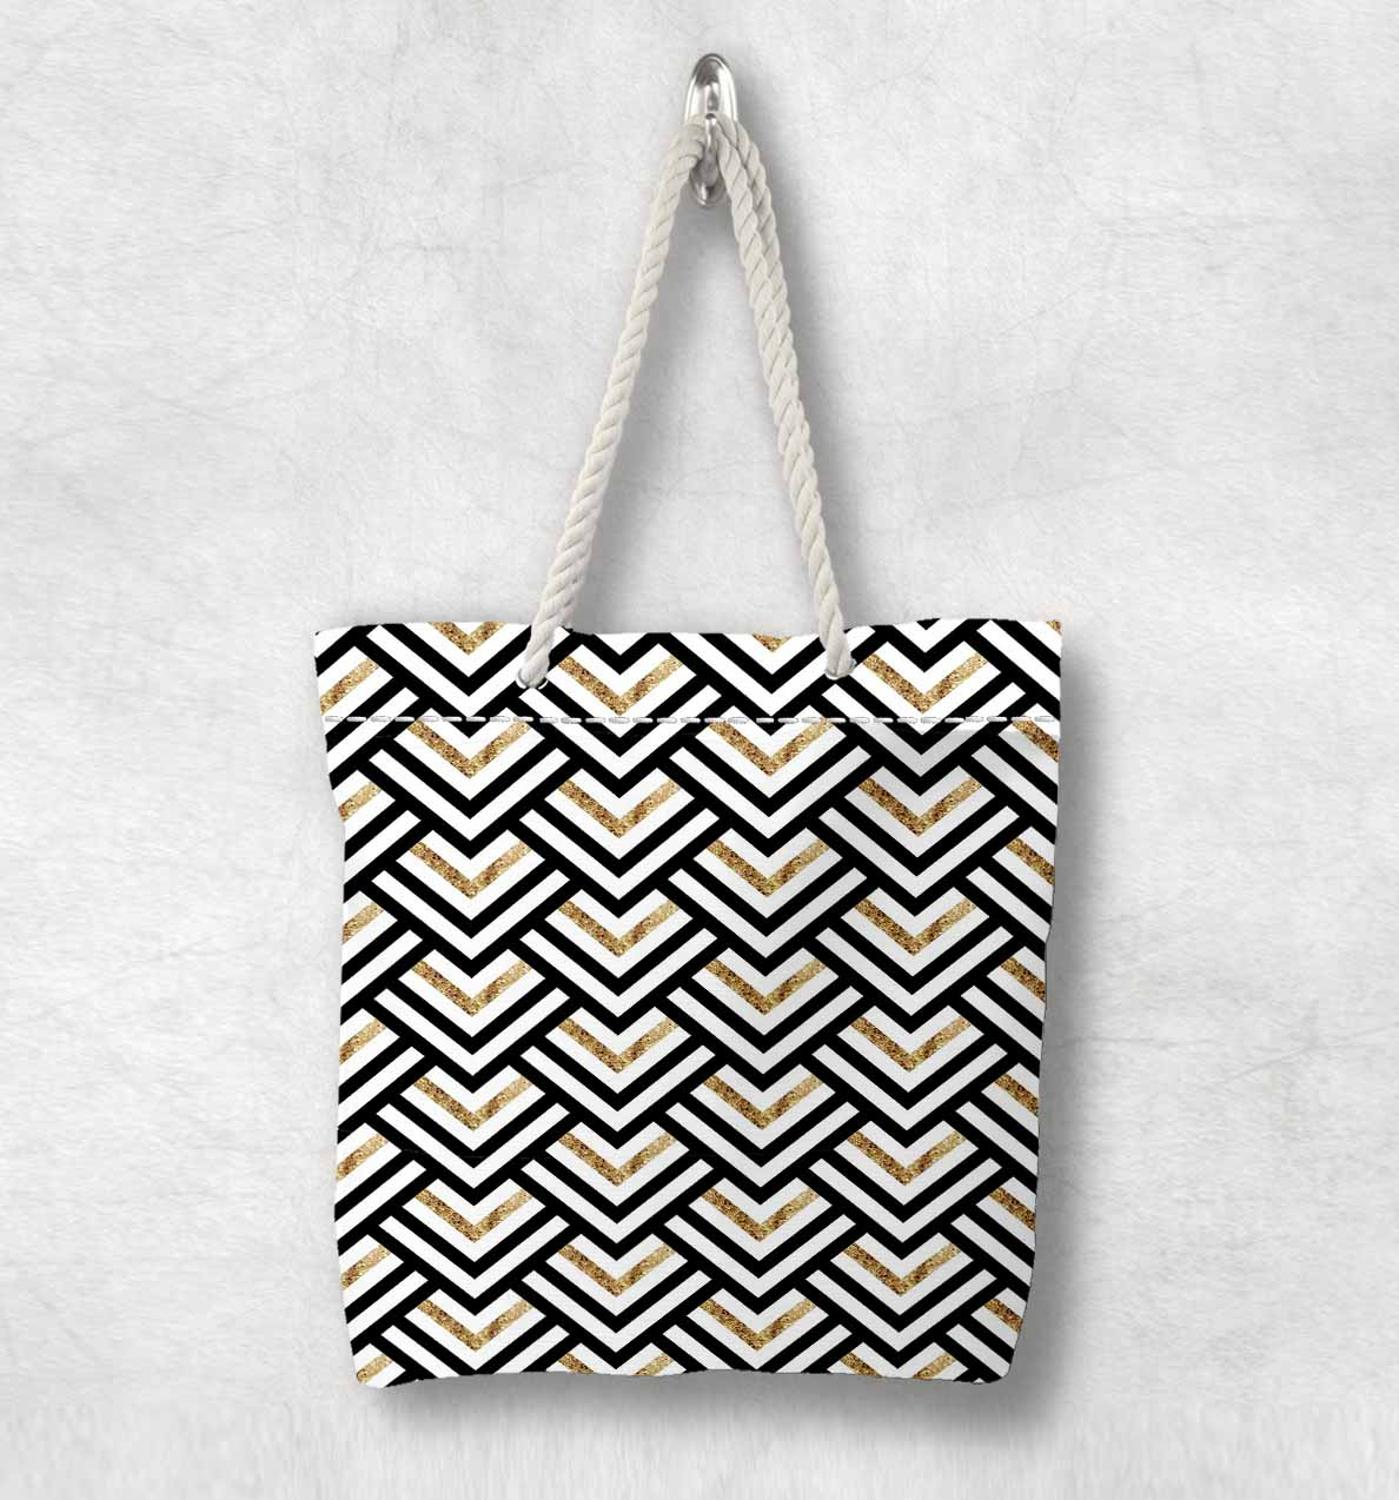 Else Black White Yellow Lines Geometric New Fashion White Rope Handle Canvas Bag Cotton Canvas Zippered Tote Bag Shoulder Bag